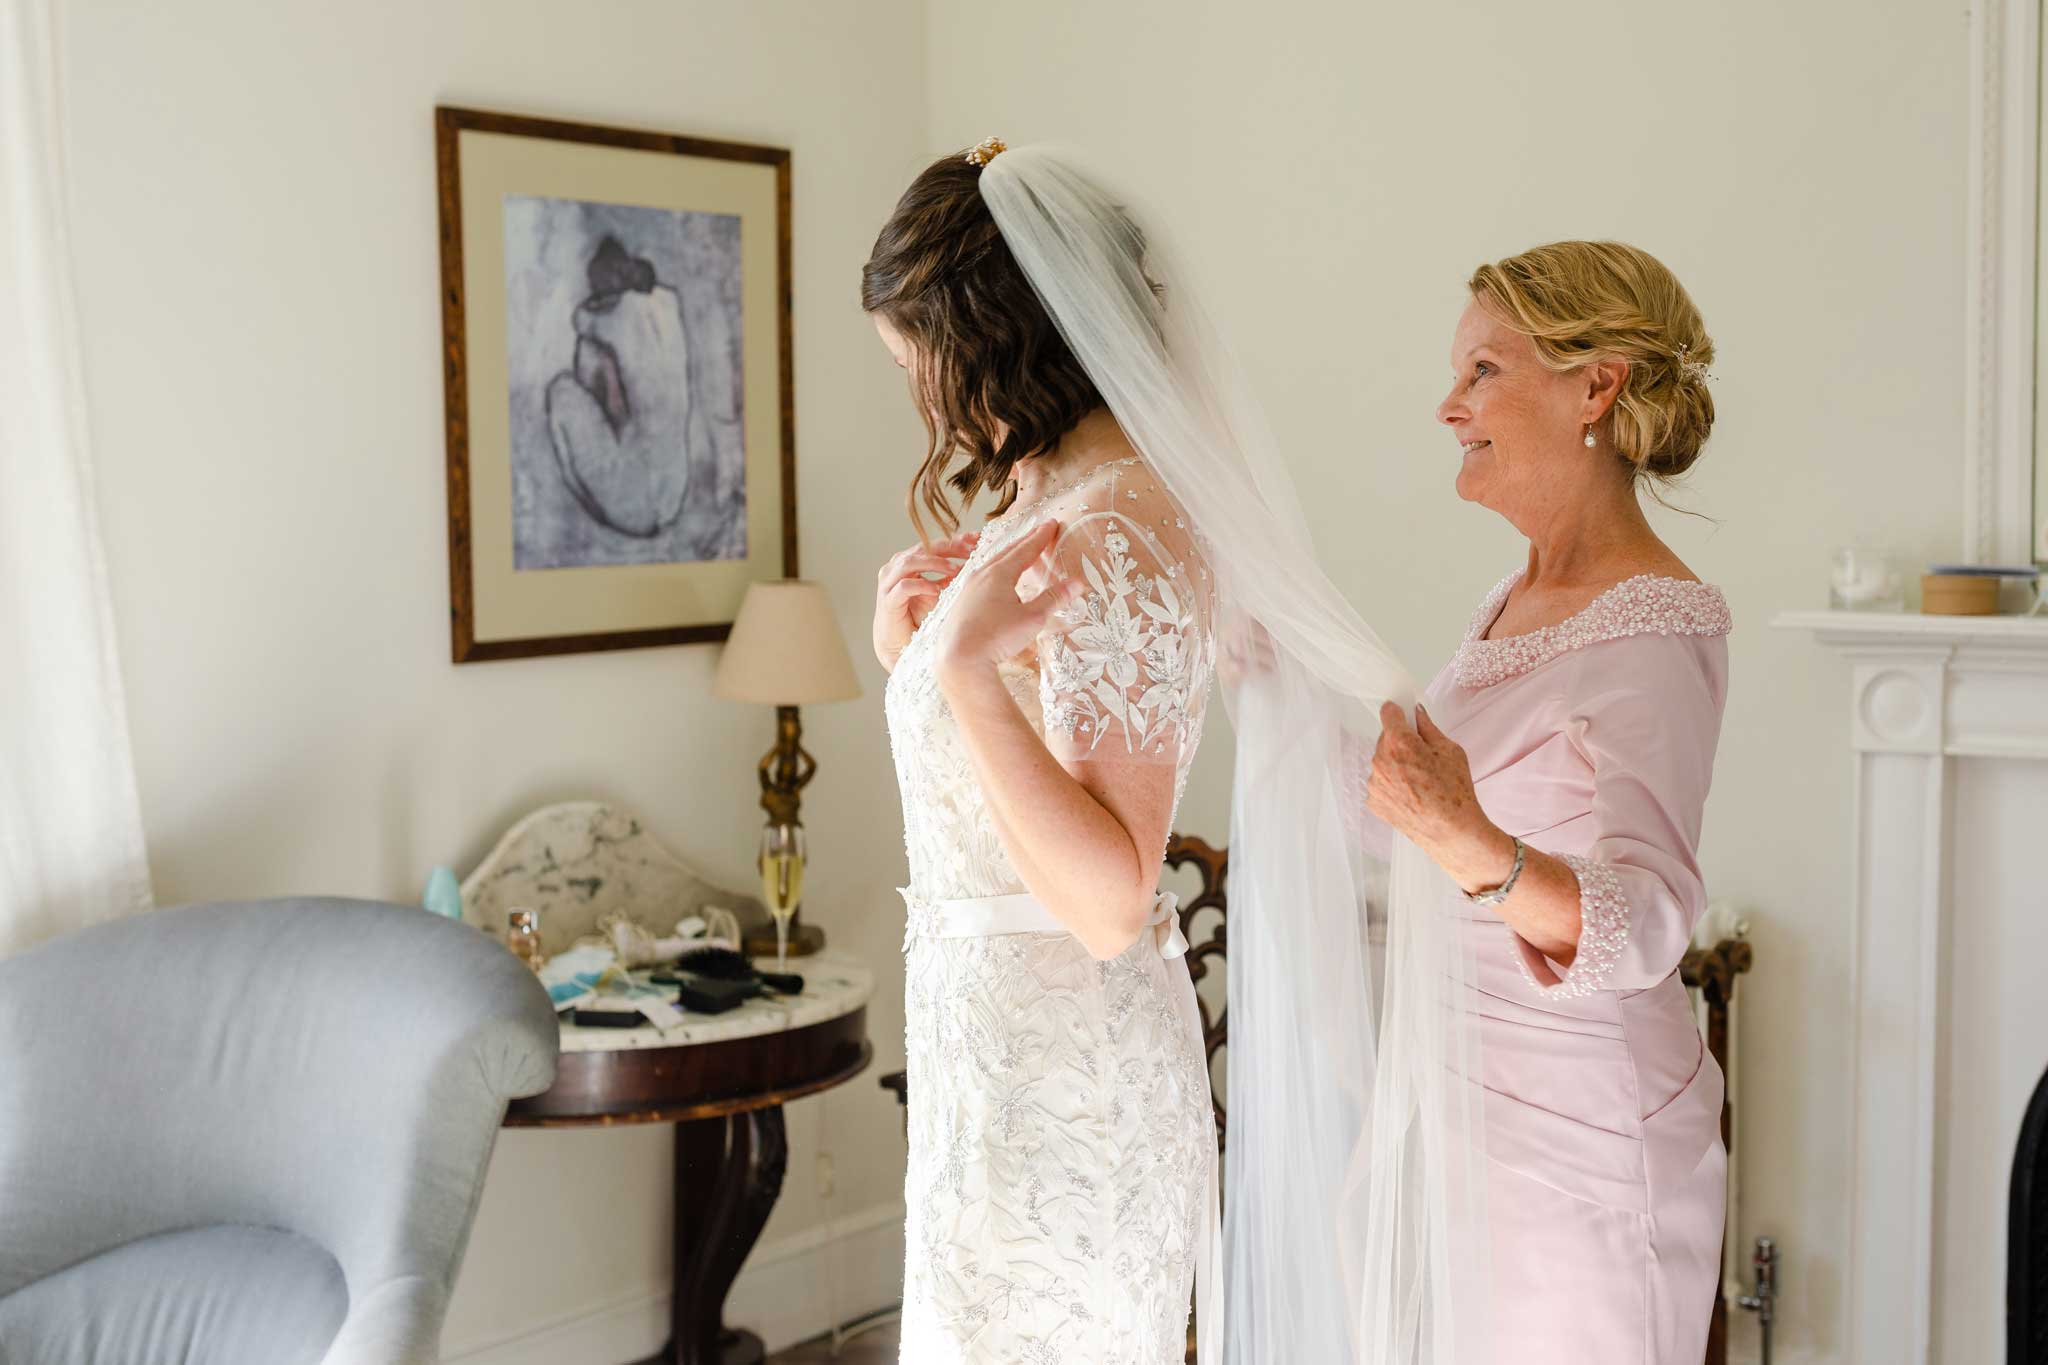 mother helping daughter into wedding dress